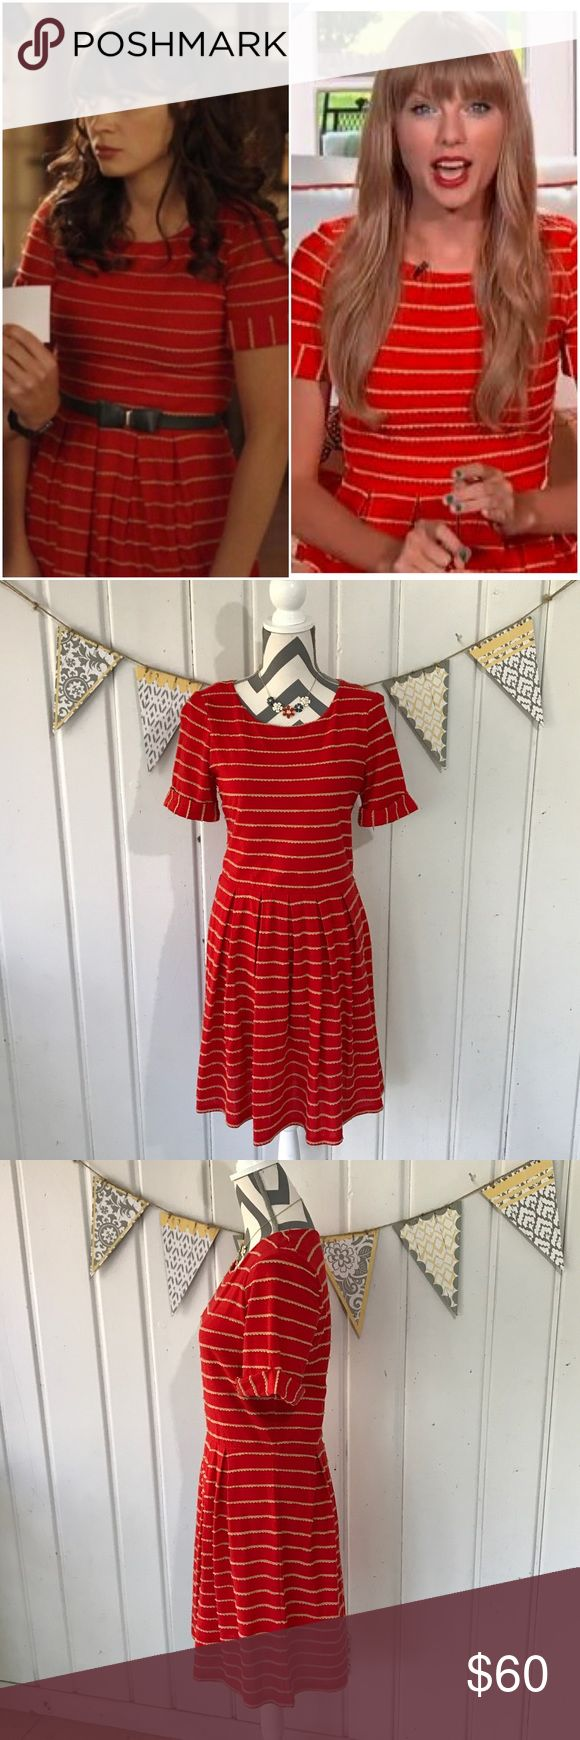 "Anthropologie Scalloped Stripes Dress by Bordeaux Adorable red dress with a pleated skirt and scalloped tan stripes. This is the dress that Taylor Swift wore when announcing her ""Red"" album and Zooey Deschanel wore this dress in the show ""New Girl."" I think that this dress runs a size small. Tag says Large, but fits more like a medium. Measures 37"" long and 17"" armpit to armpit. Excellent gently used condition with very slight, unnoticeable, pilling under the arms. Only worn and hand washed…"